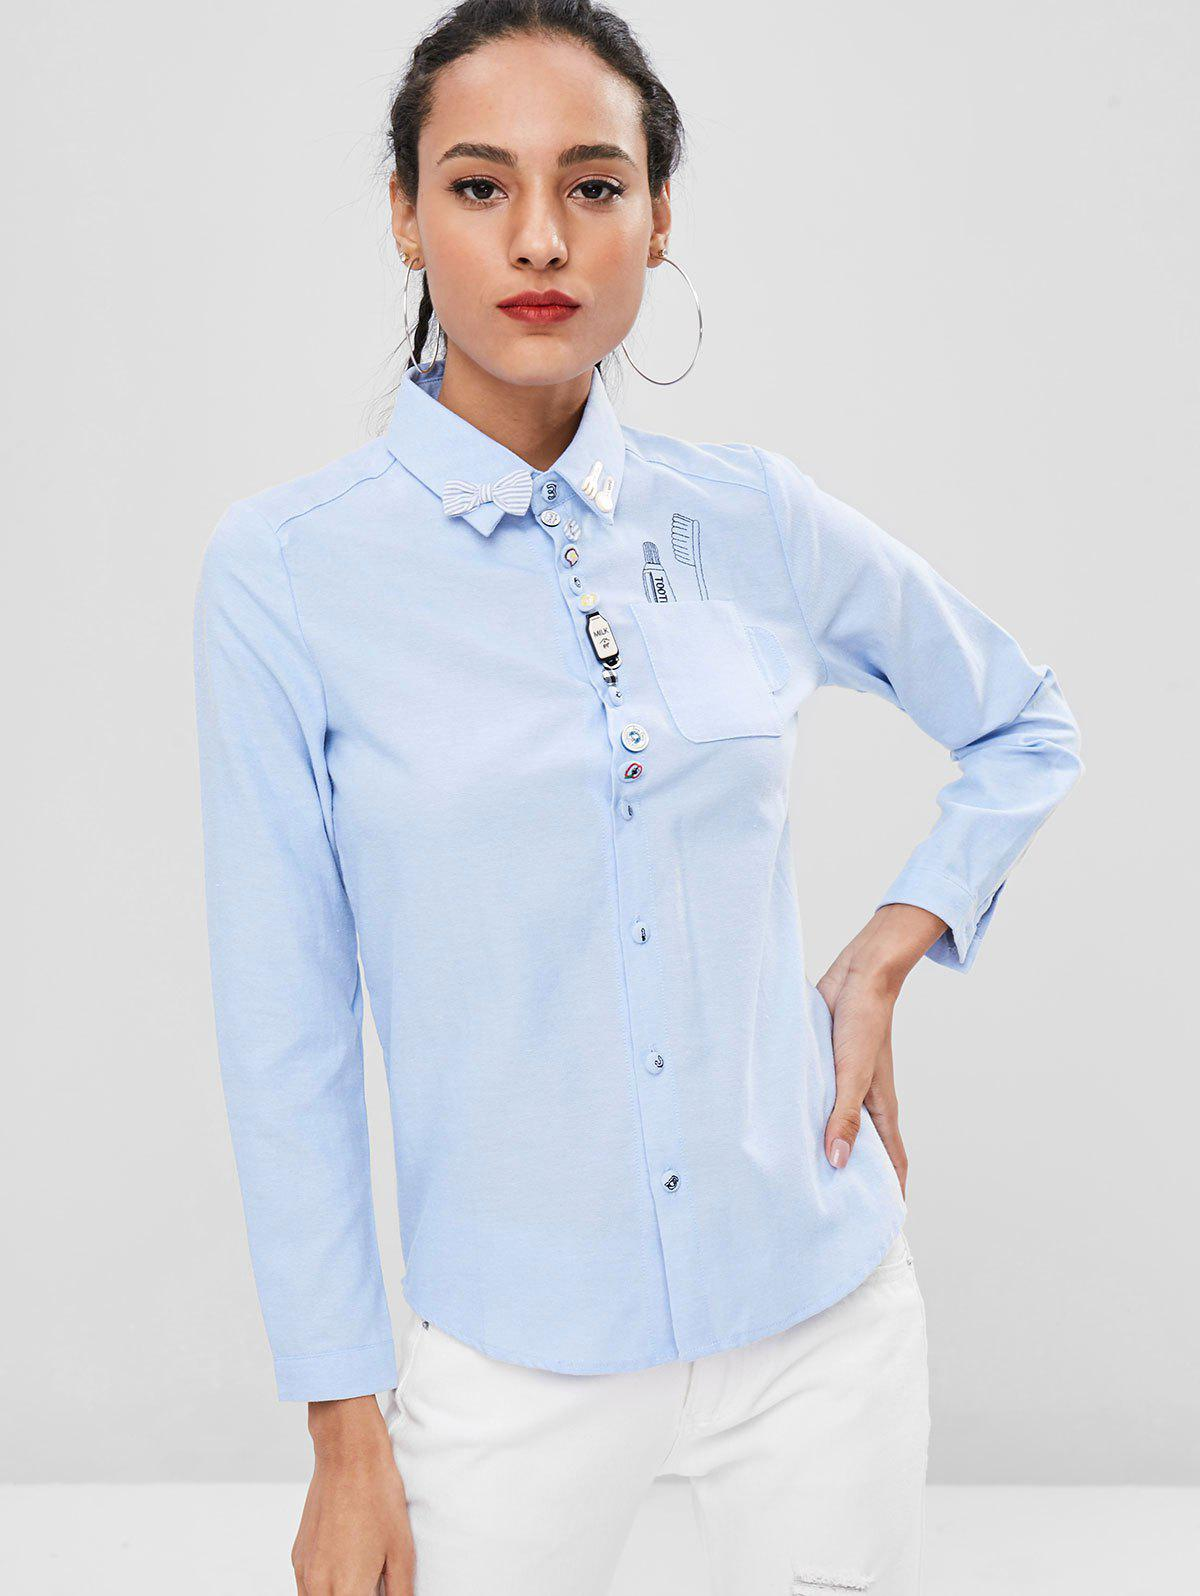 Embroidered Funny Multiple Buttons Front Shirt, Sky blue